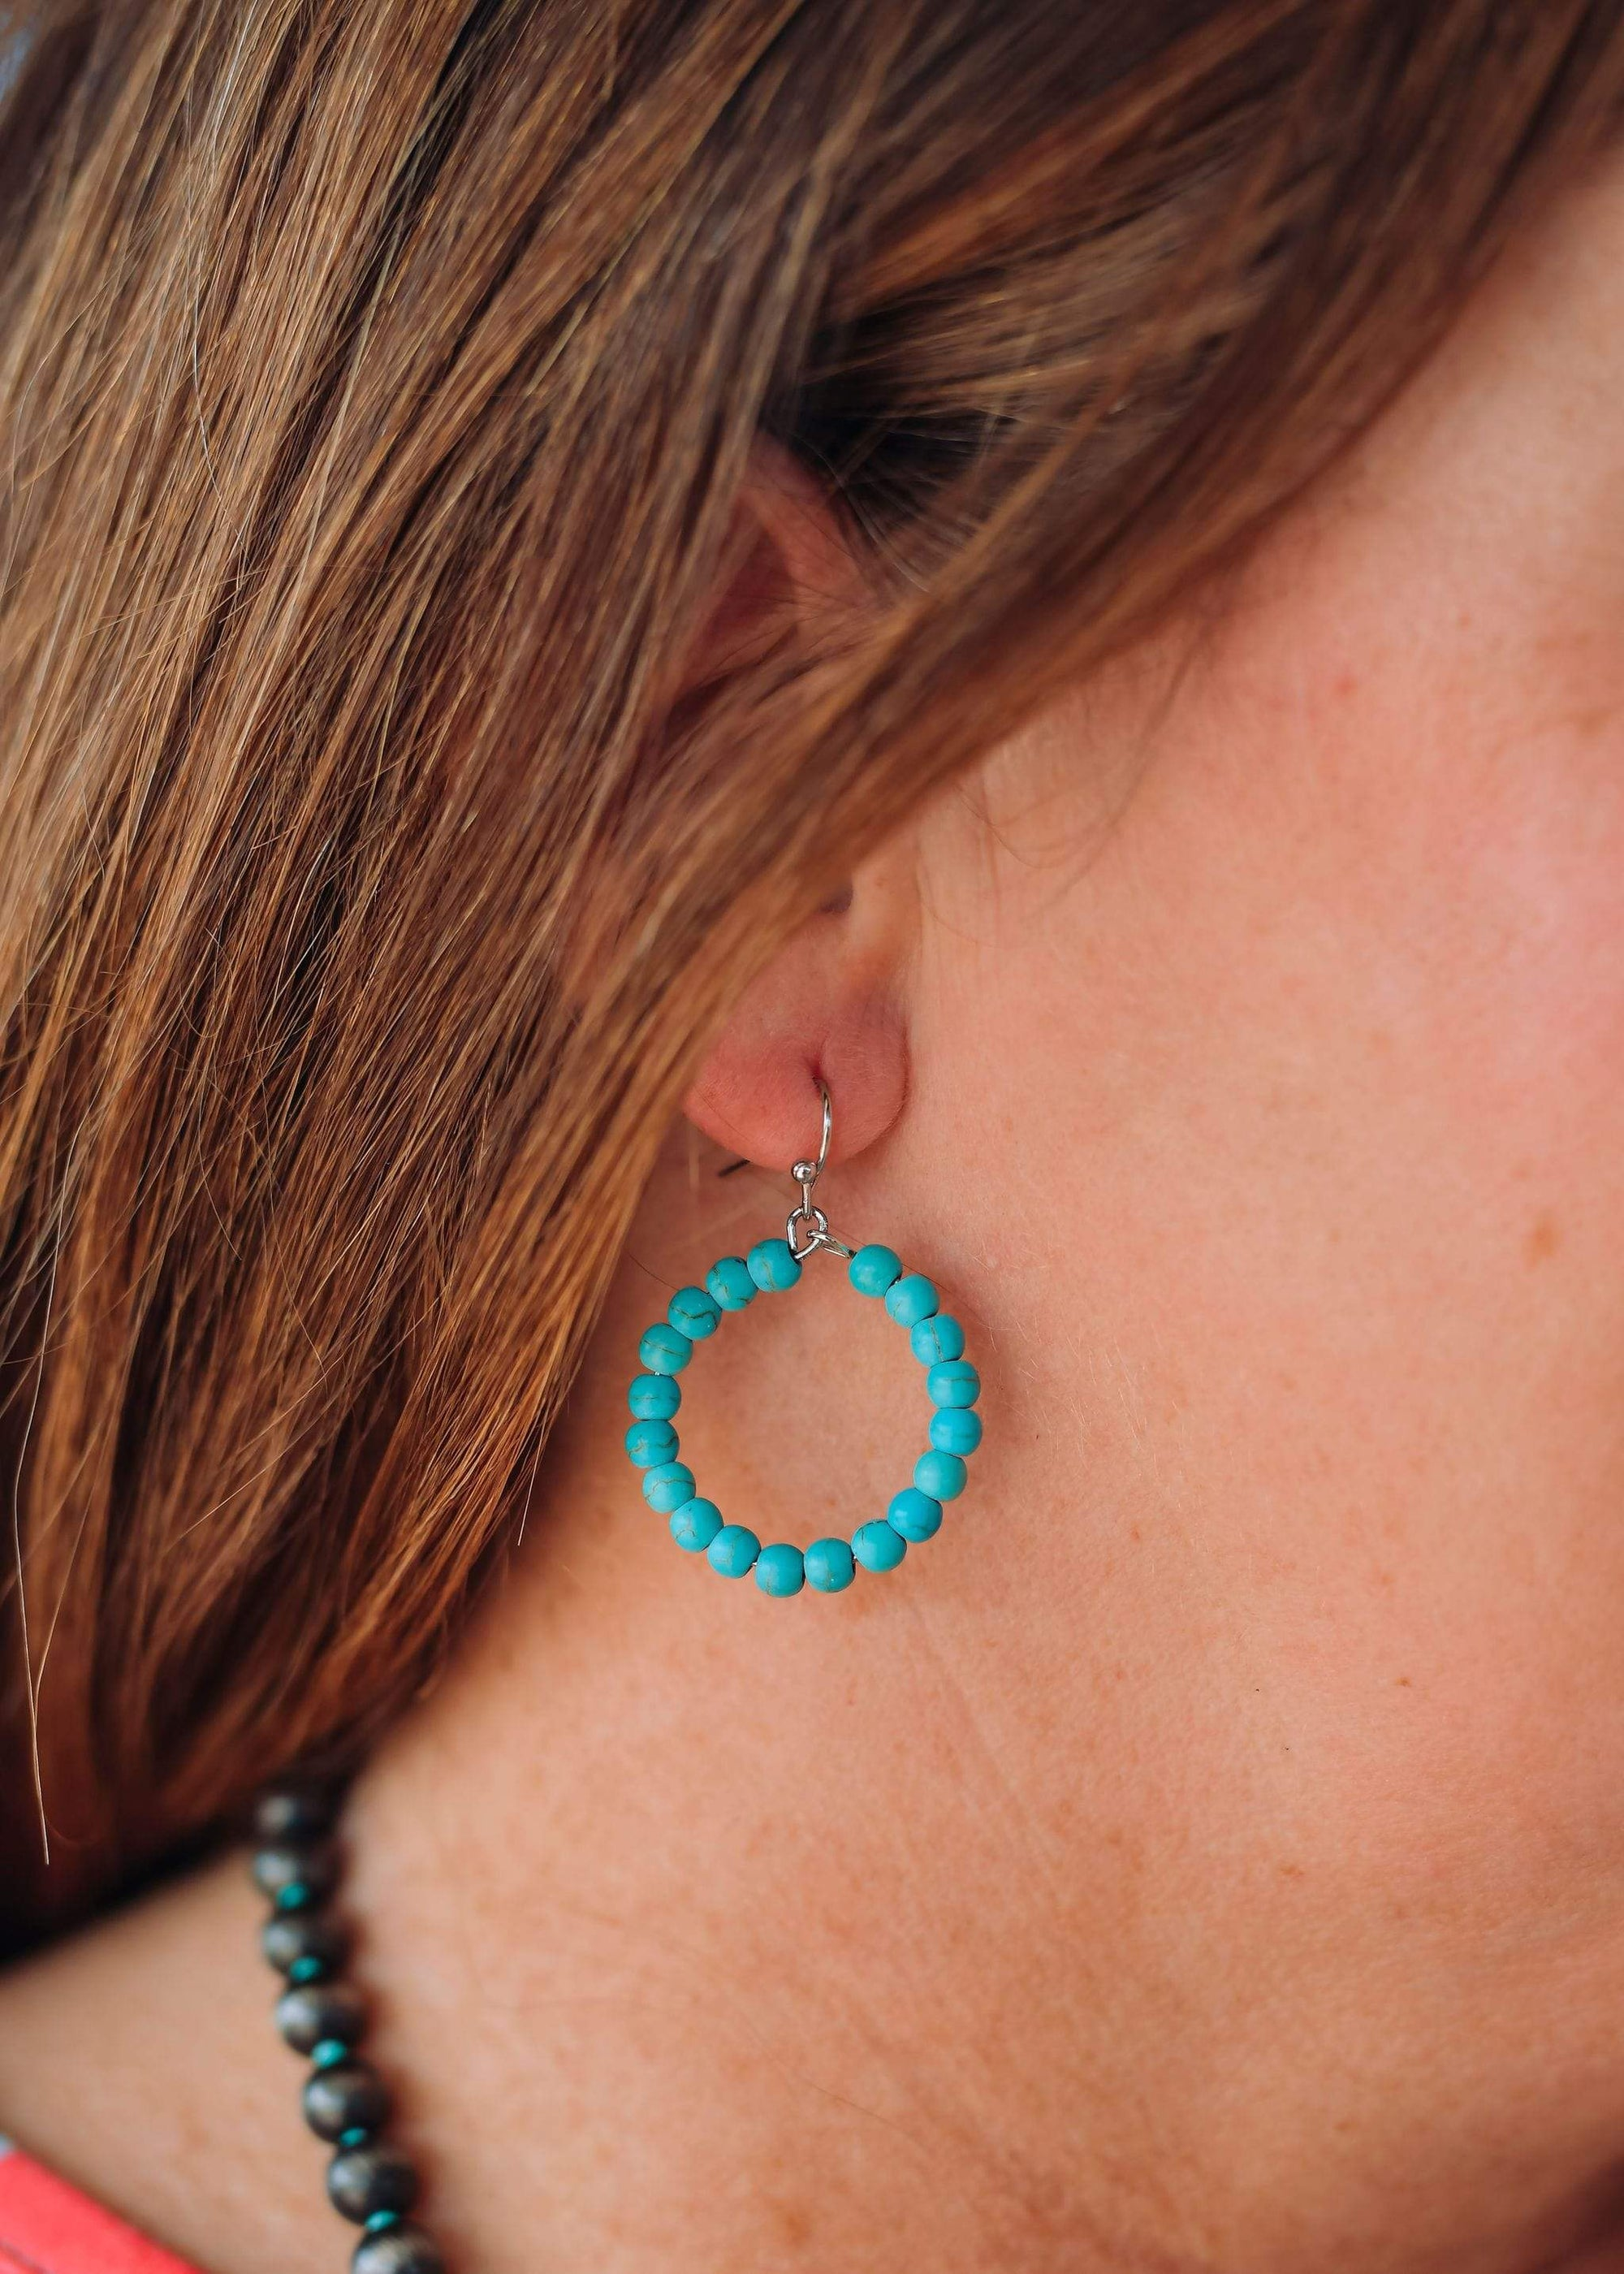 Accessorize In Style Fashion Earrings Fashion Turquoise Bead Small Hoops